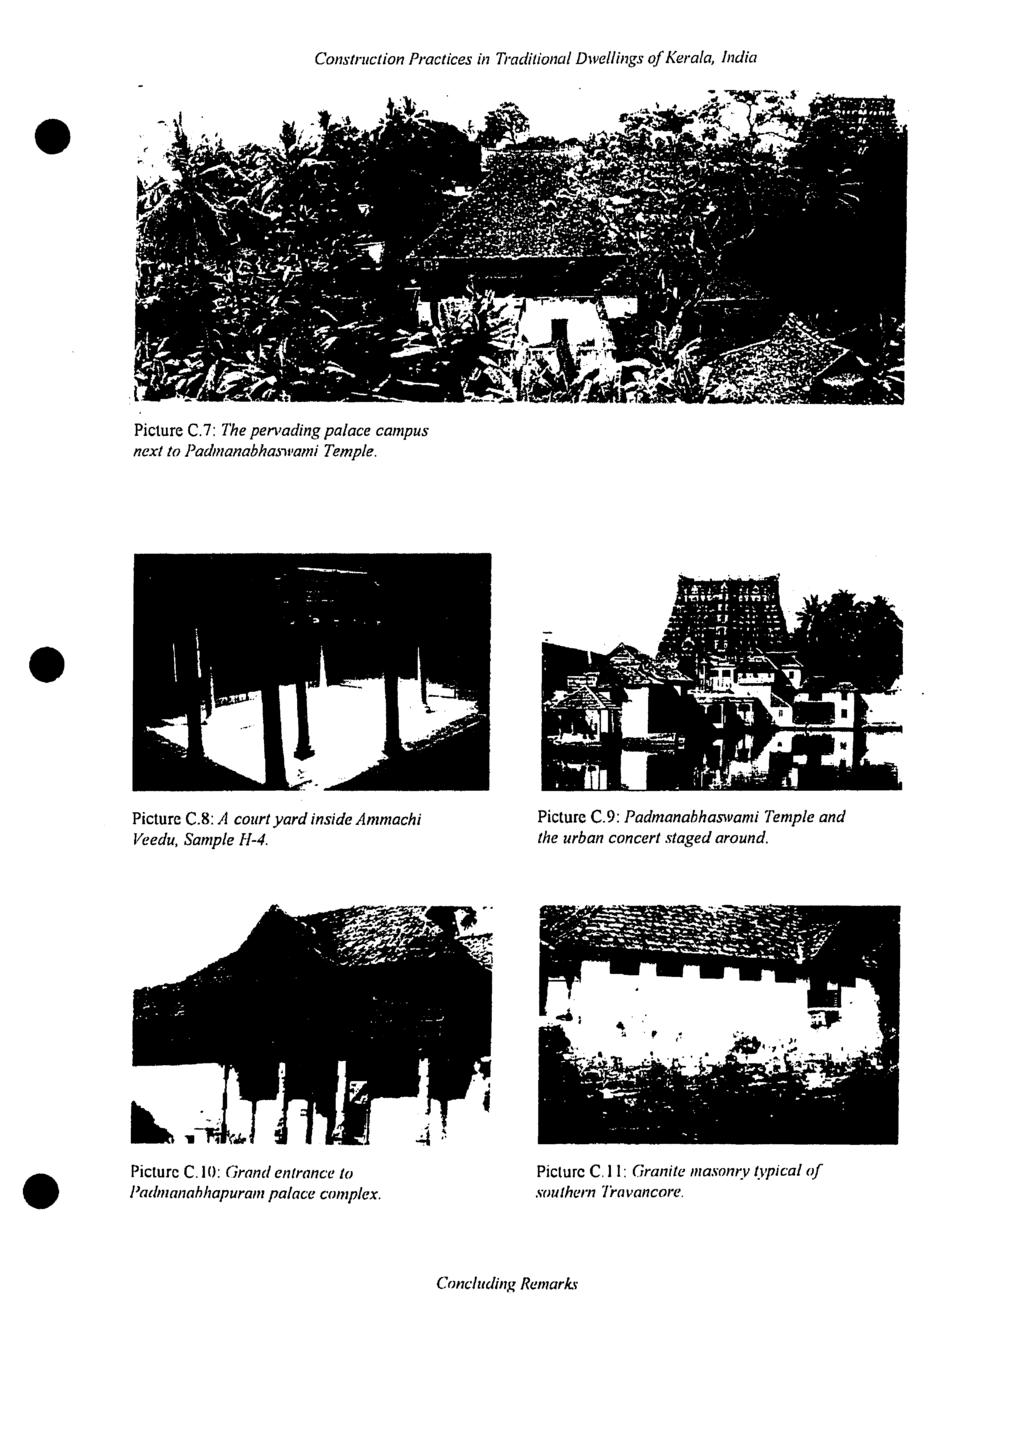 , lndia Picture C.7: The pervading palace campus next to Padmanabhmll'ami Temple. Picture C.8: A court yard inside Ammachi Veedu. Sample fl-4. Picture C.9: Padmanahhaswami Temple and the urban concert staged around.